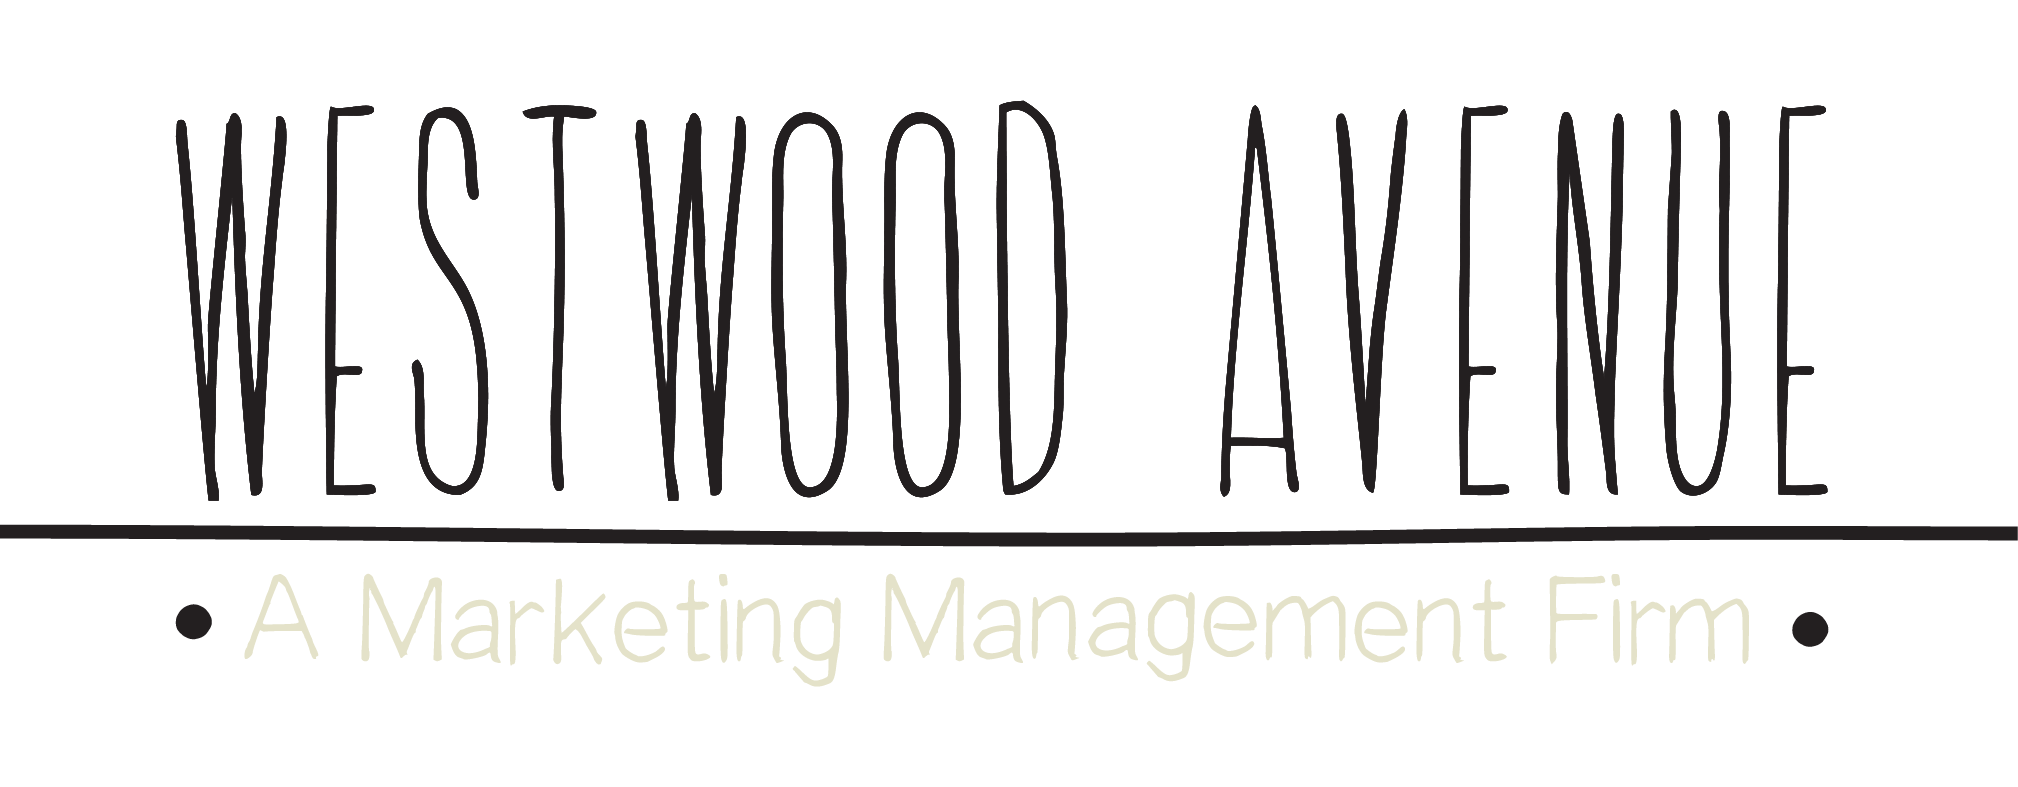 A Marketing Management Firm